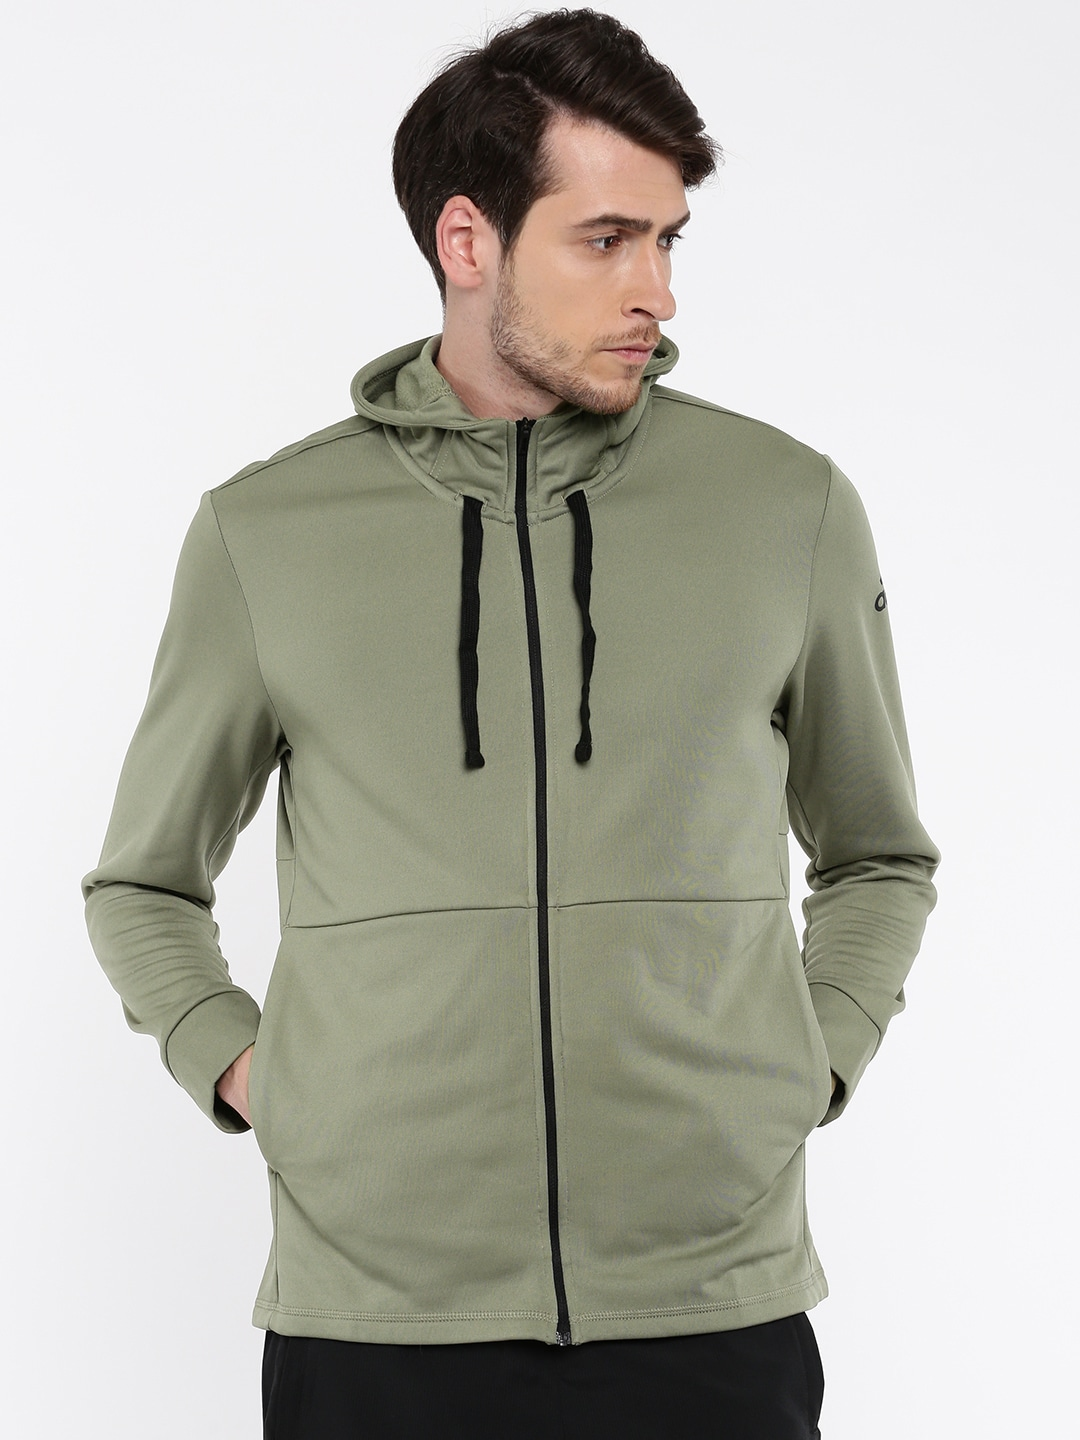 Buy Adidas WORKOUT FZ LITE Olive Green Solid Hooded Men's Sweatshirt At Best Price